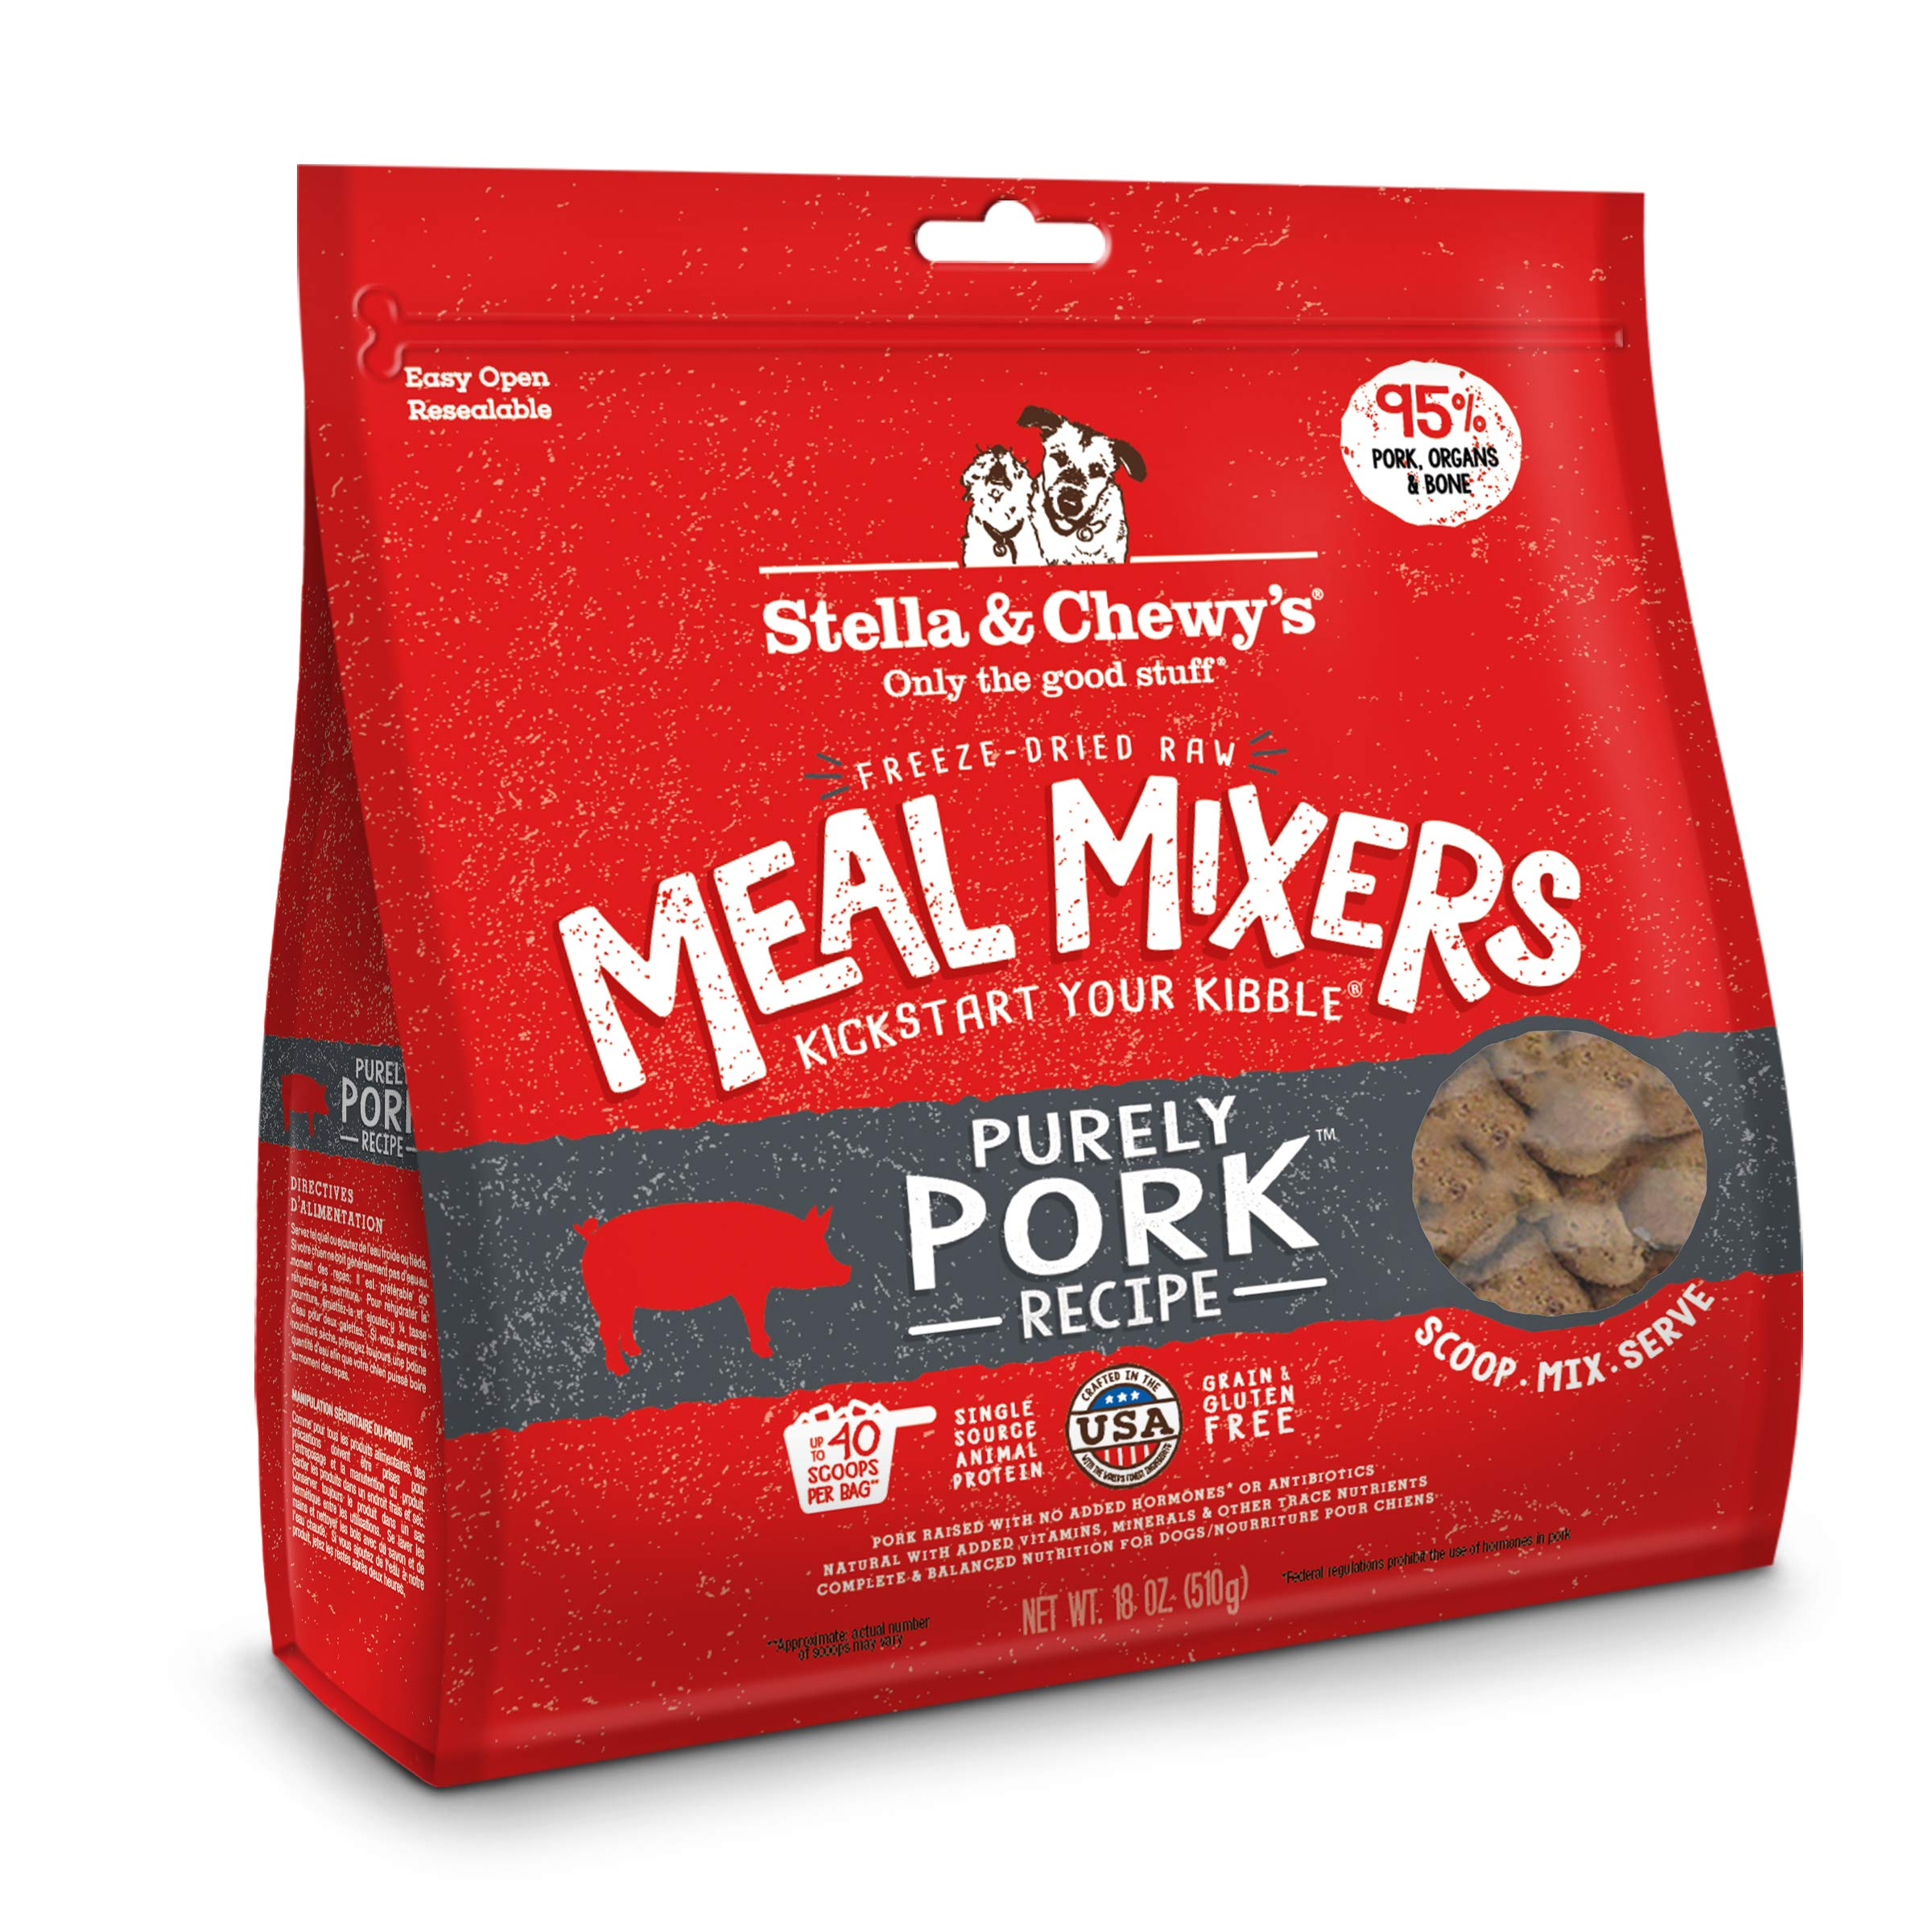 Stella & Chewy's Freeze-Dried Raw Purely Pork Meal Mixers Dog Food Topper, 18 oz. Bag by Stella & Chewy's